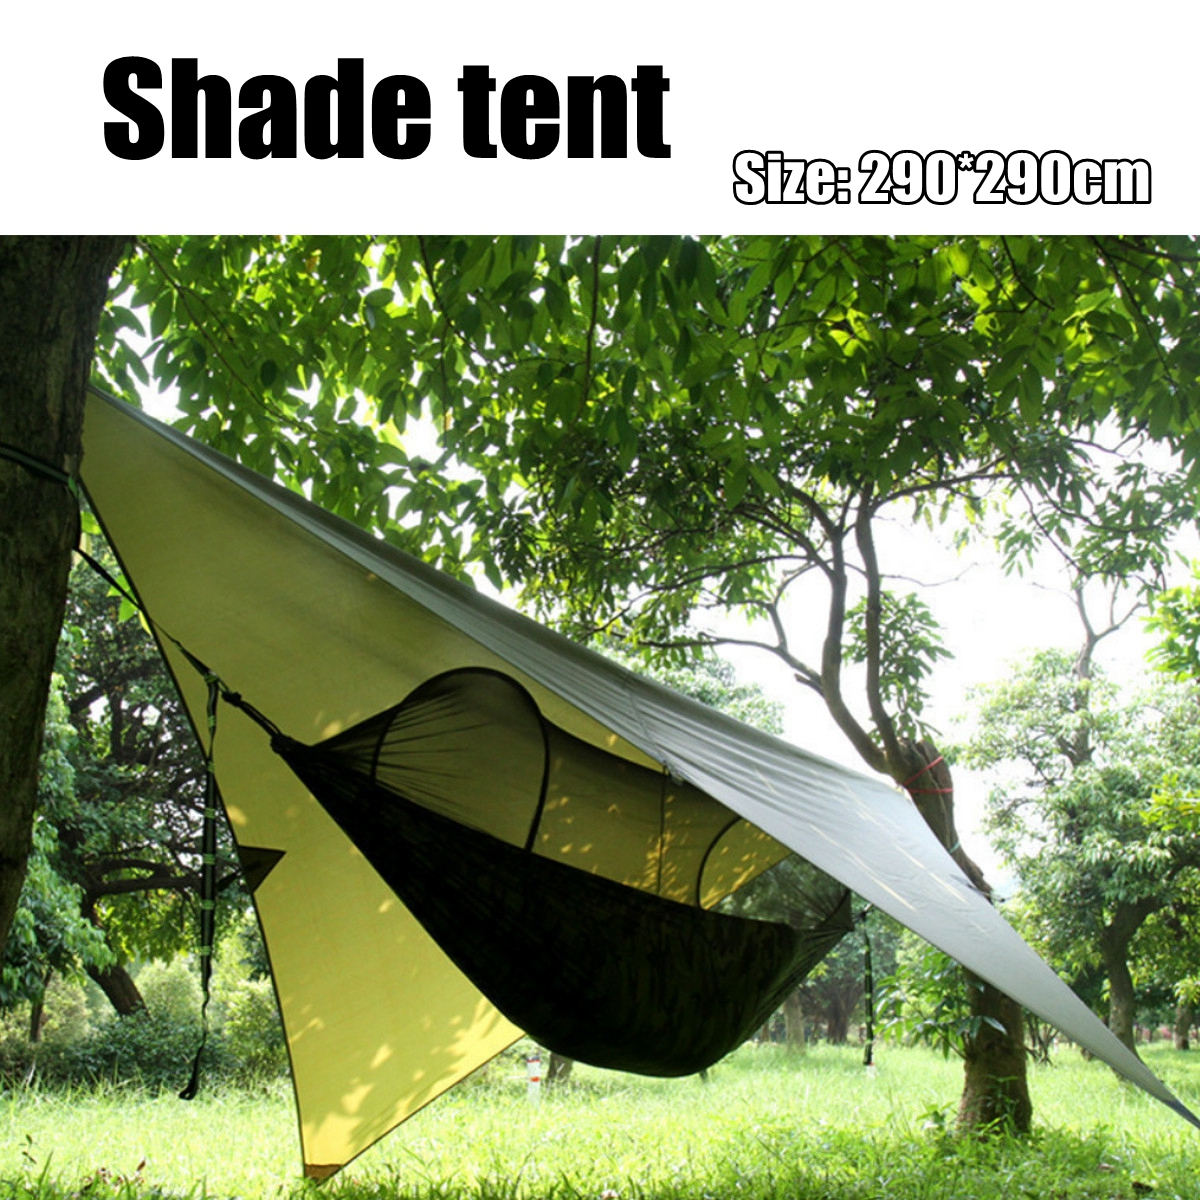 Outdoor Camping Tent Sunshade Canopy Waterproof Anti-UV Beach Hammock Awning Shelter Tarp